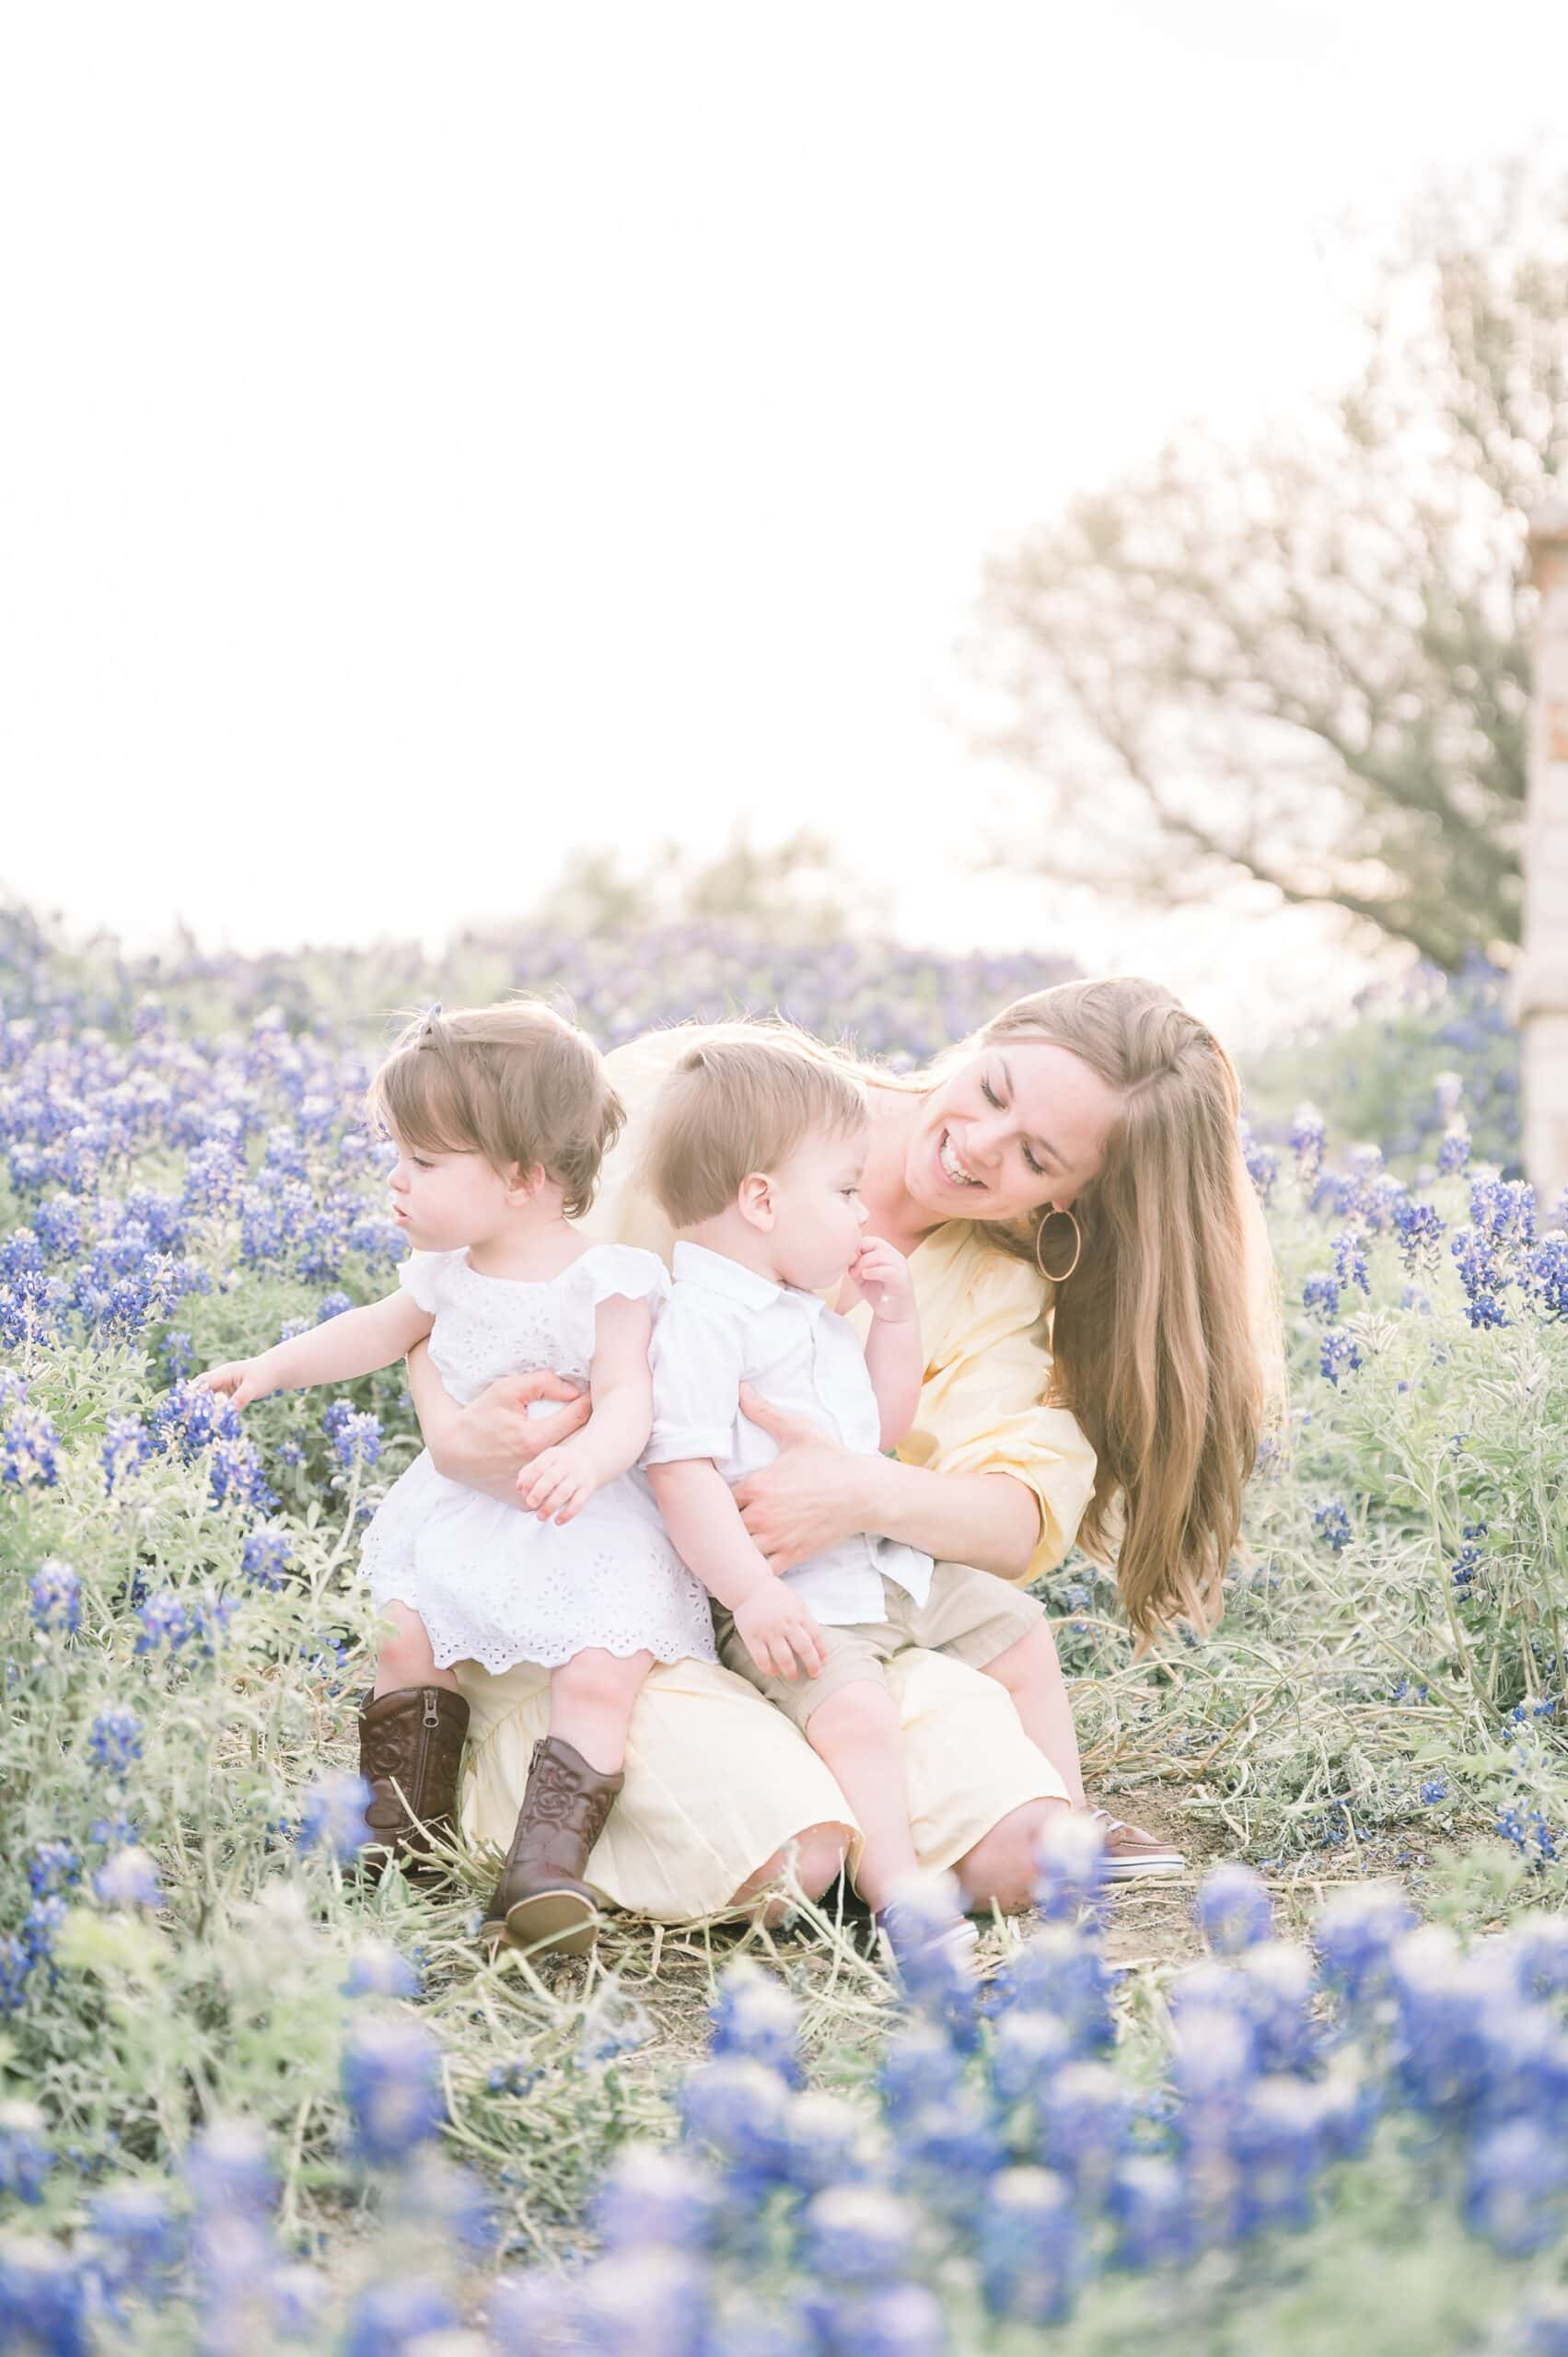 Mom cuddling with twins on sunny evening surrounded by bluebonnet blooms. Photo by Aimee Hamilton Photography.